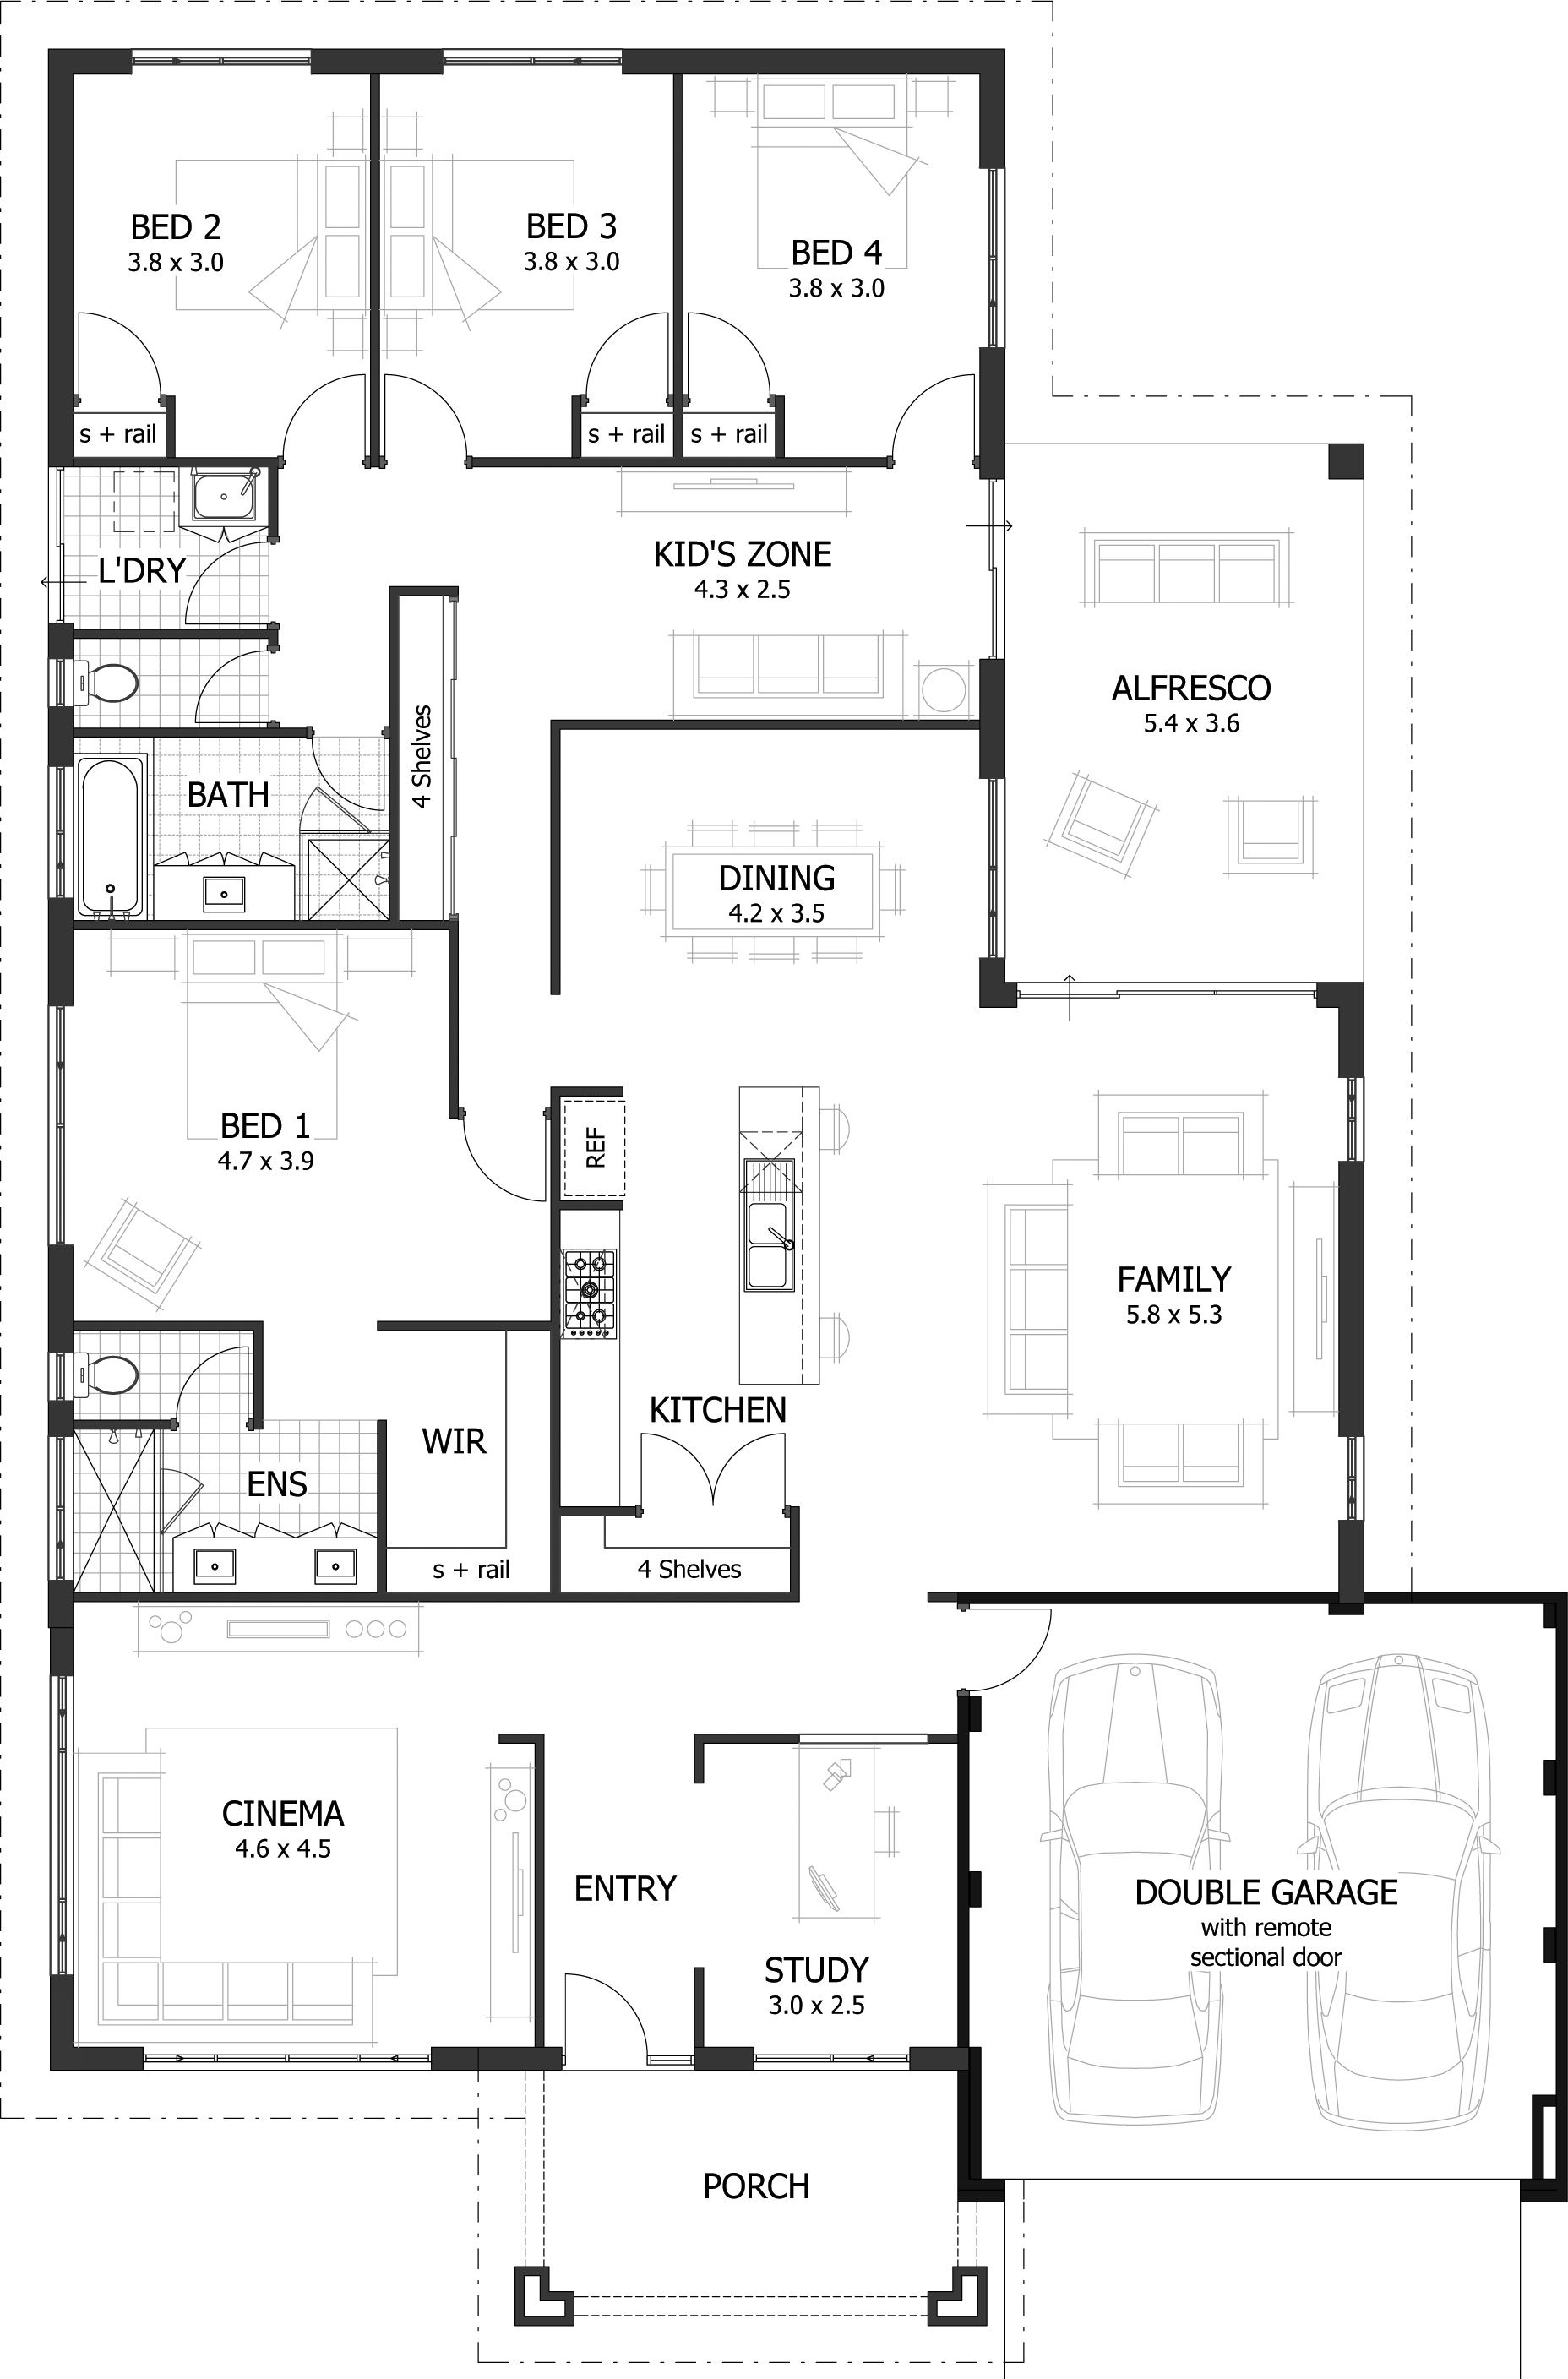 Perfect 4 Bedroom House Plans U0026 Home Designs | Celebration Homes